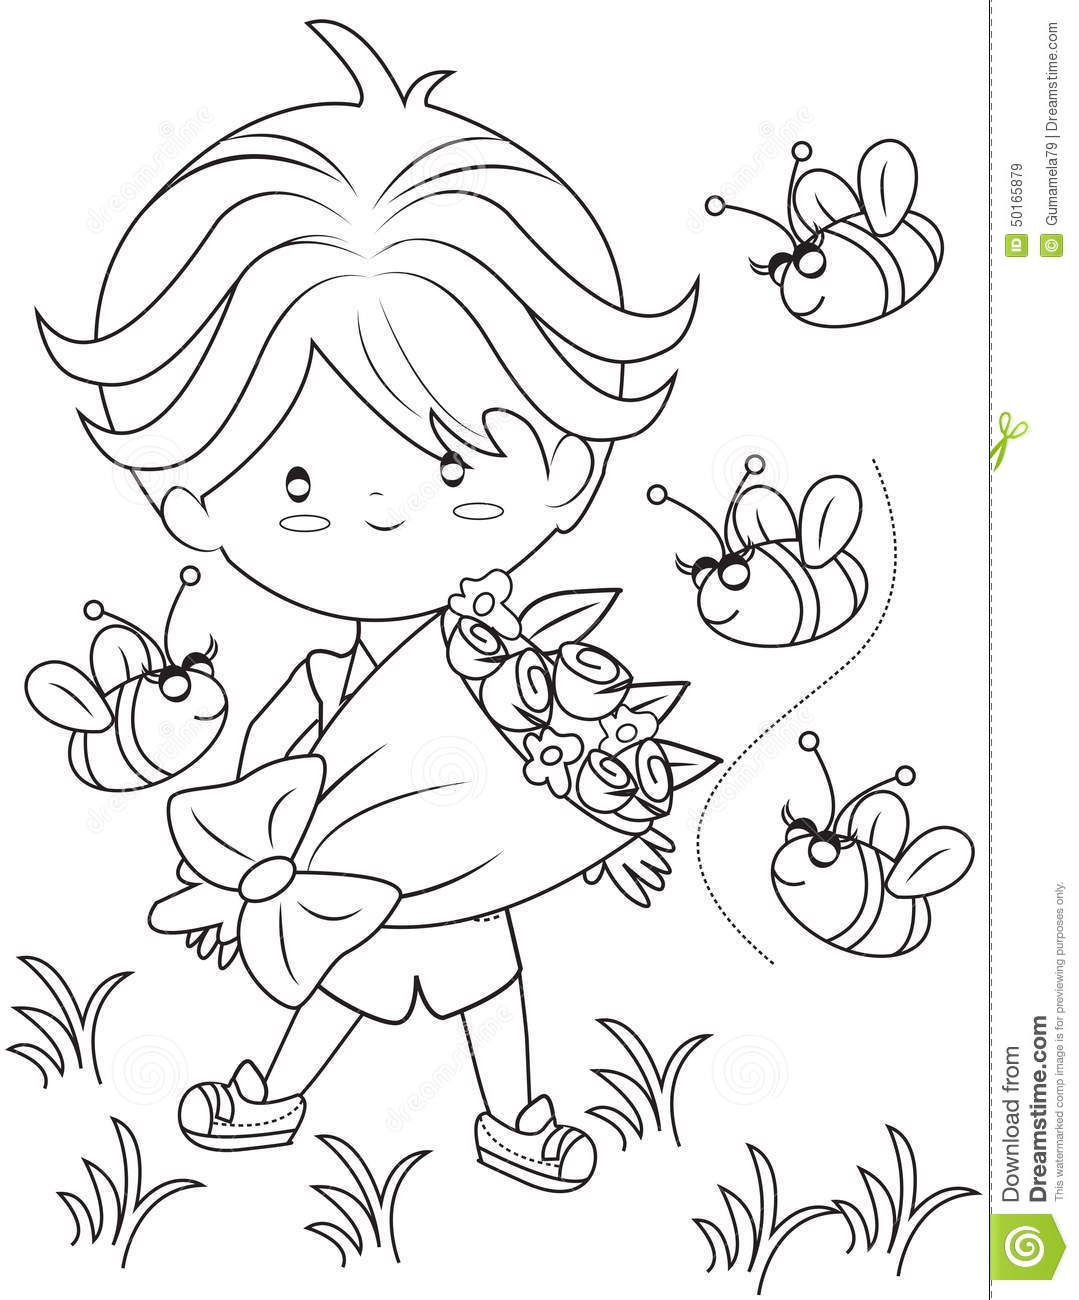 royalty free illustration download boy with a bouquet of flowers coloring